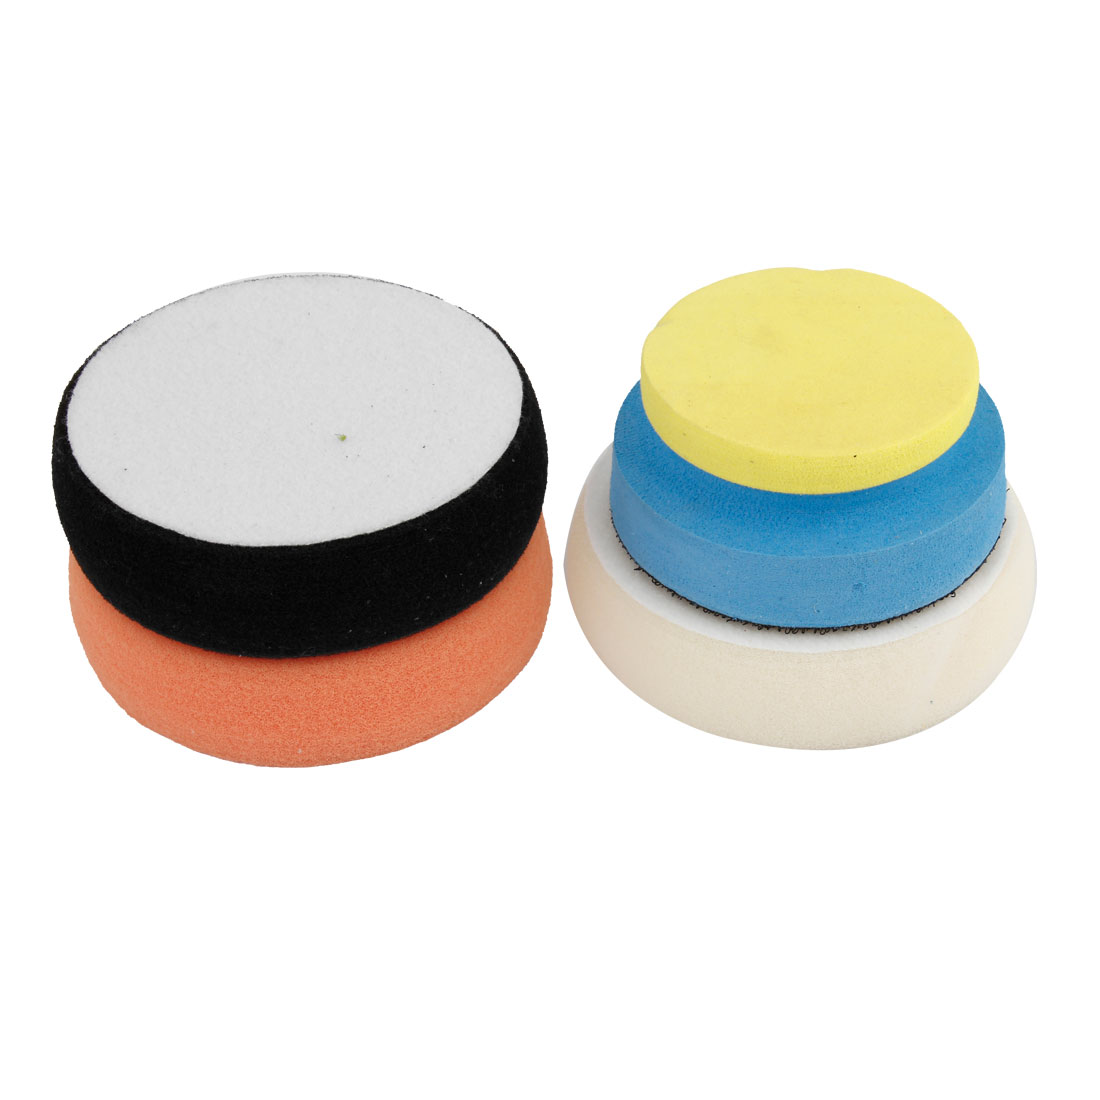 4 in 1 Car Round Cleaning Washing Polishing Tool Sponge Pad Set